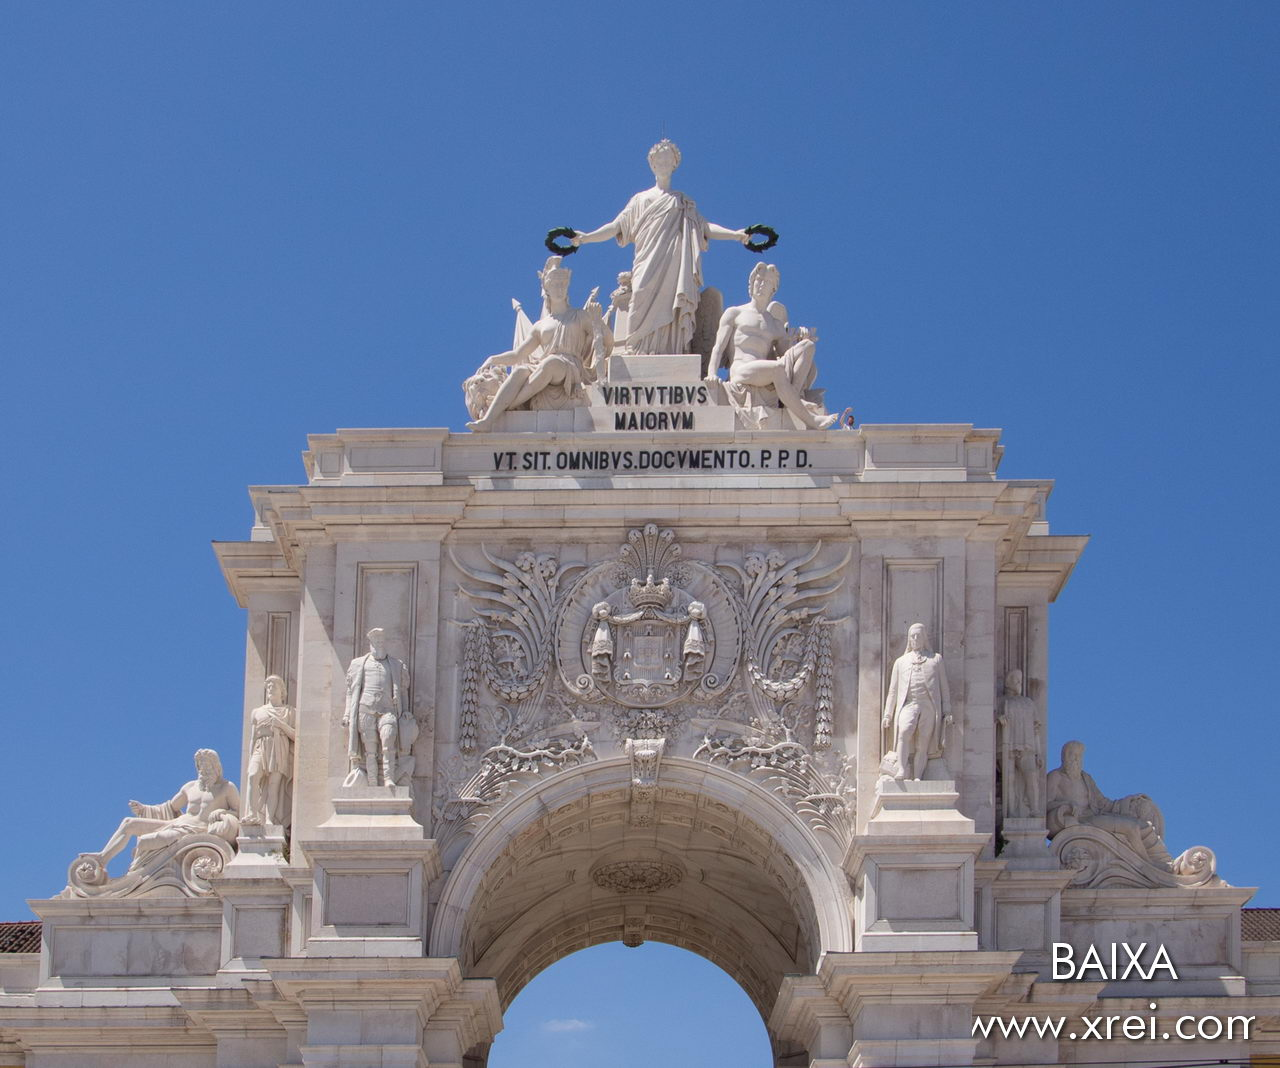 "The Rua Augusta Arch is decorated by 12 elements, namely the Glory at the top to crown the Leftward Value, and the Genius on the right, with the inscriptions below: ""VIRTVTIBVS MAIORVM"" The virtues of the Greater "" VT SIT OMNIBVS DOCVMENTO.PPD ""May it be a lesson for all of us. Dedicated to public spending"" Below, from the left to the right we have 6 statues representing the Tagus River, Viriato, Marquês de Pombal, Vasco da Gama, Nuno Álvares Pereira, and the Douro River. In the center we have the coat of arms of Portugal"